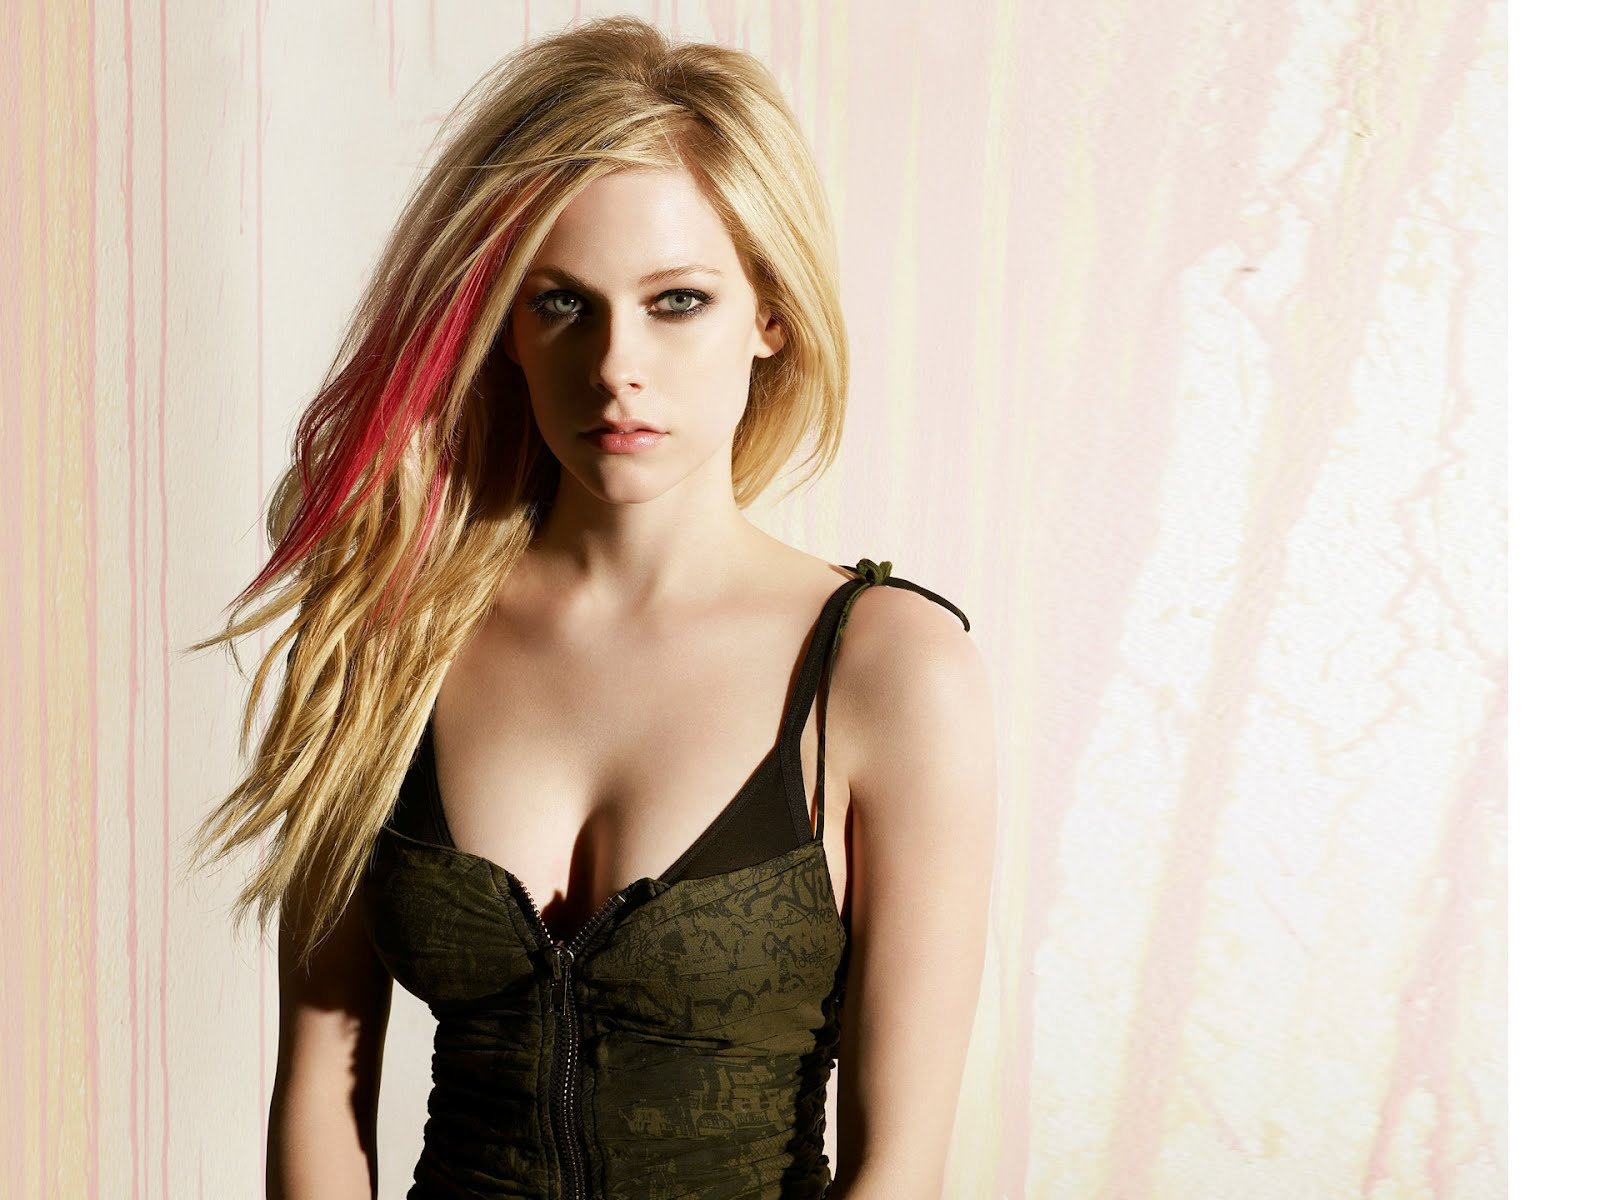 Avril Lavigne Downloads: Avril Lavigne Hot: http://avrillavignedownloads.blogspot.com/2012/07/avril-lavigne-hot.html